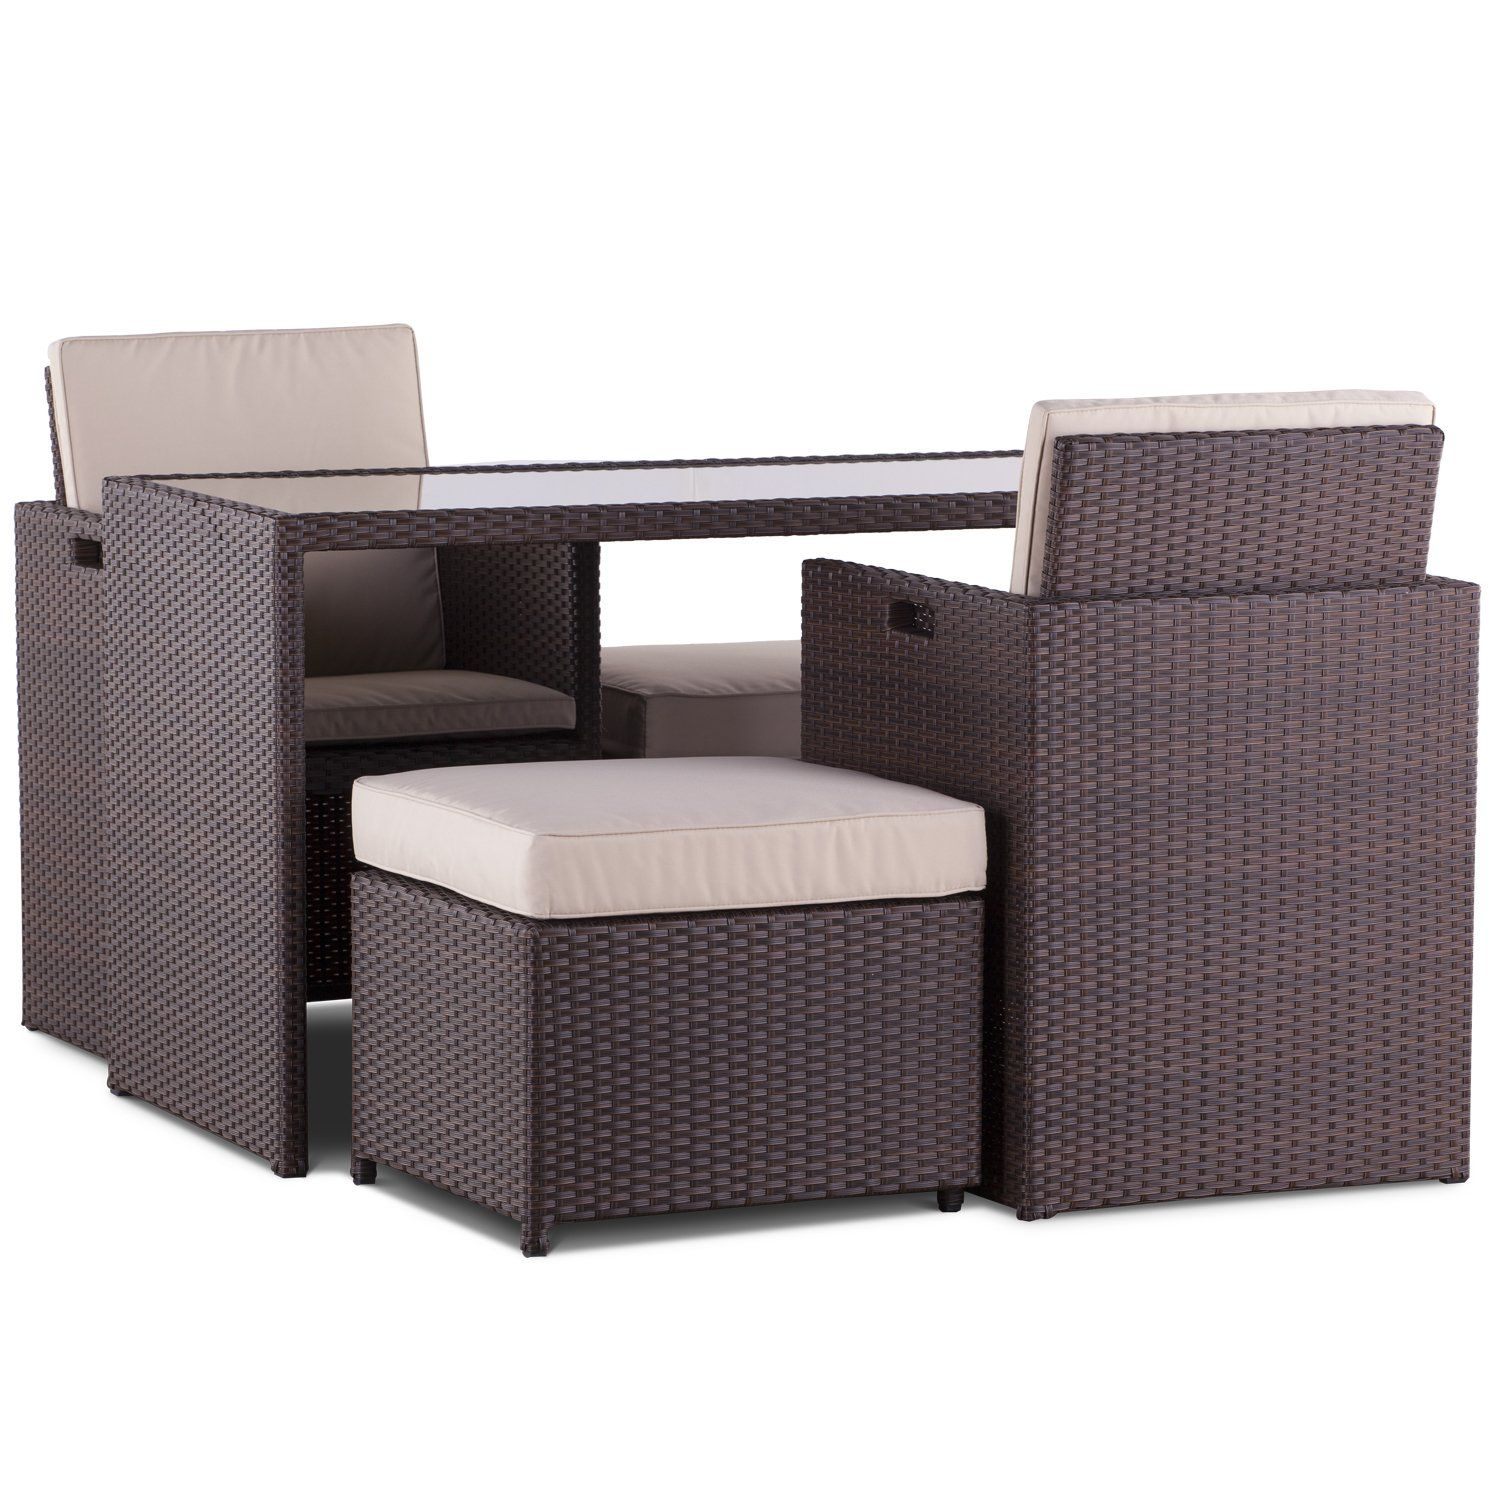 Two Seater Rattan Garden Furniture Cannes two plus two seater cube dining set brown rattan garden cannes two plus two seater cube dining set brown rattan garden furniture set 2 workwithnaturefo